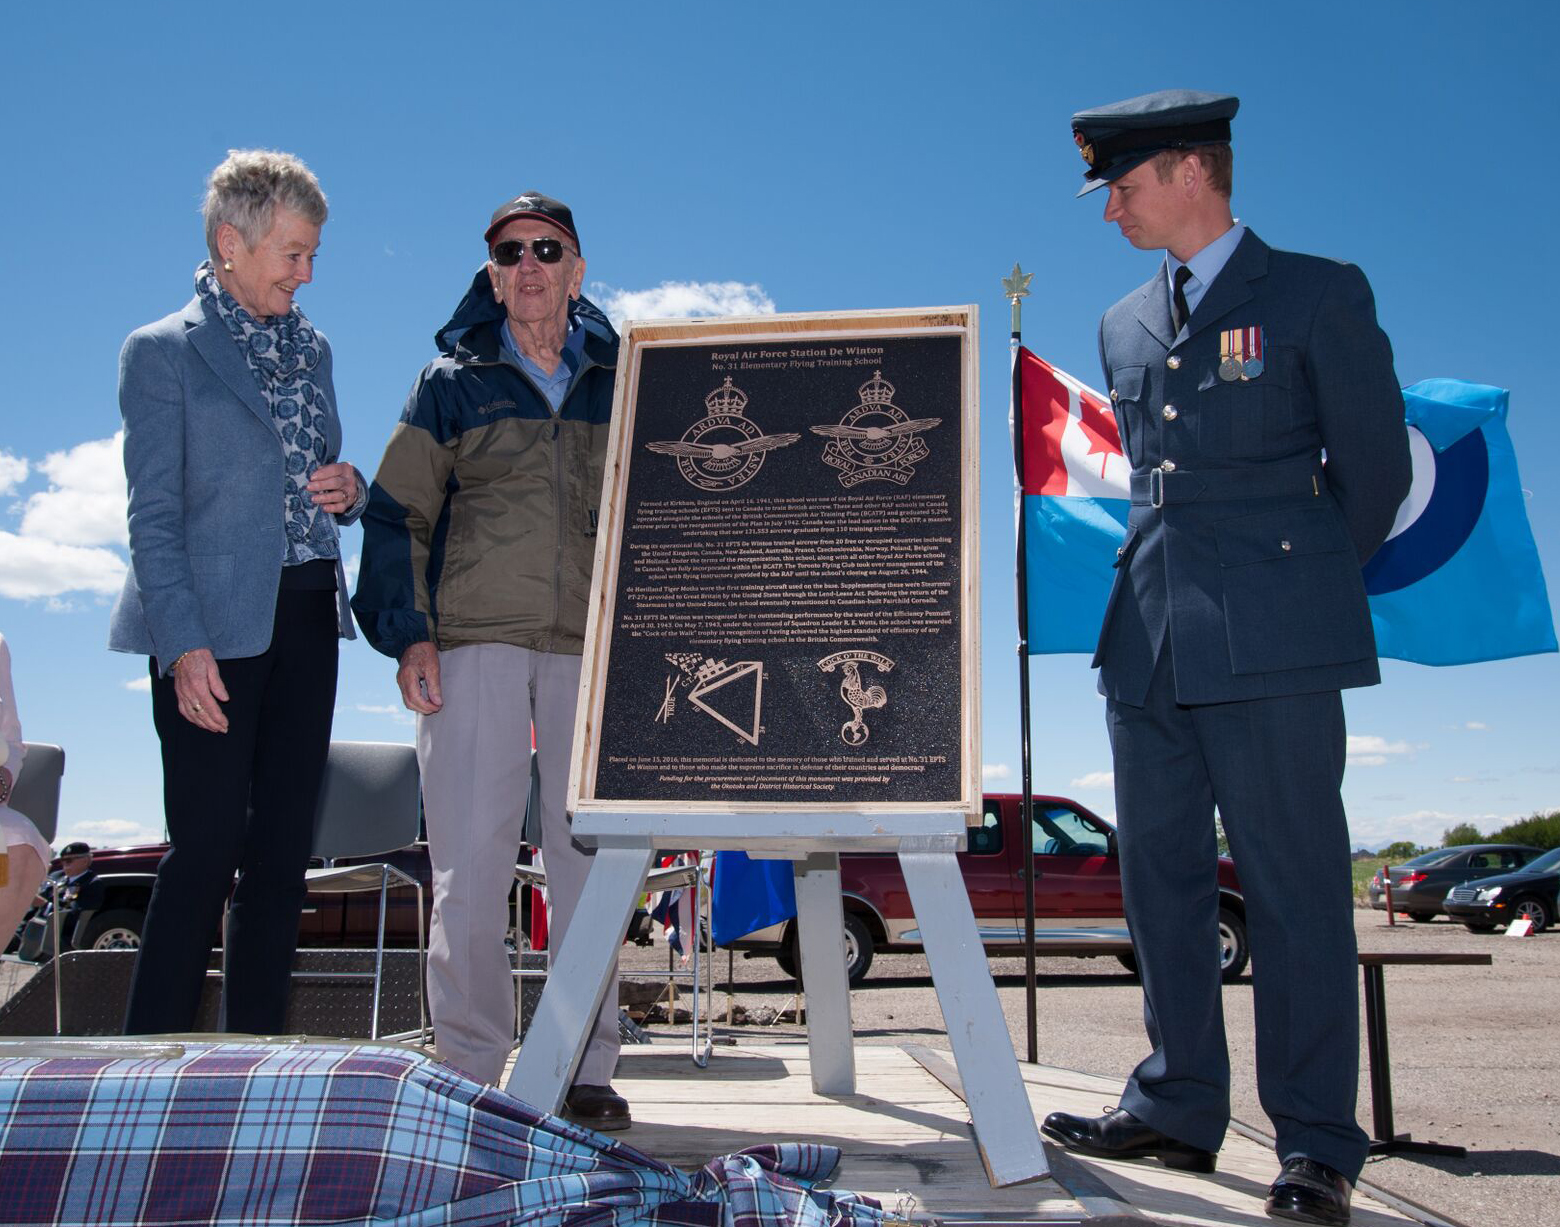 A woman, an elderly man and a young man in a Royal Air Force uniform stand beside a large bronze plaque on an easel.